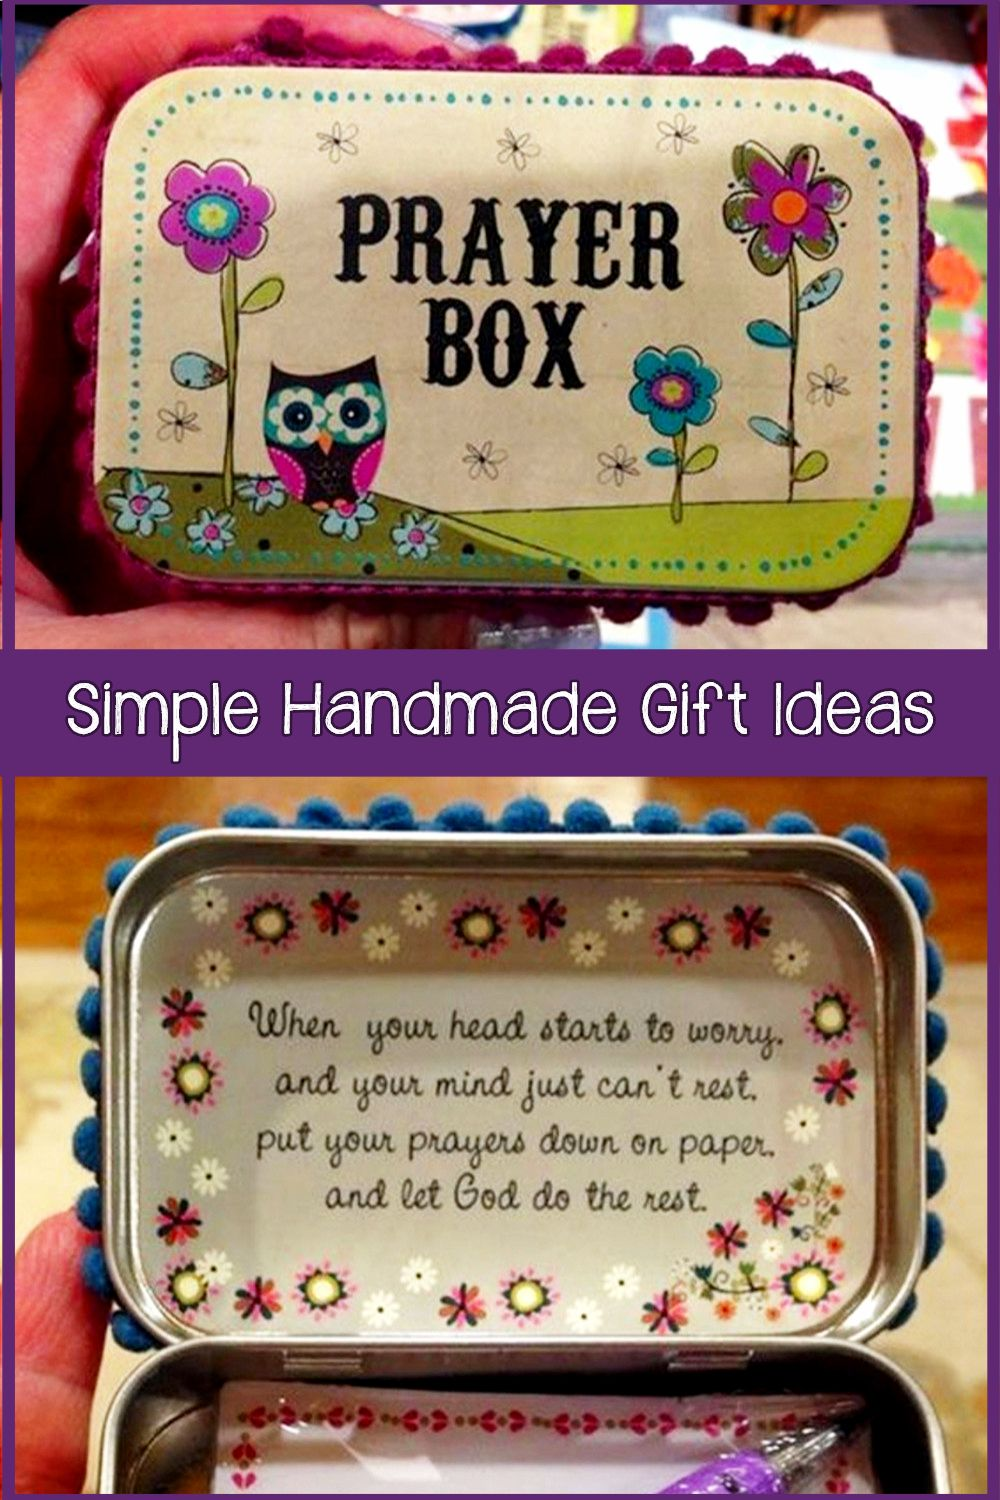 Creative Diy Christmas Gifts Unique Homemade Christmas Gift Ideas Clever Diy Ideas Diy Christmas Gifts Creative Diy Christmas Gifts Unique Christmas Gifts